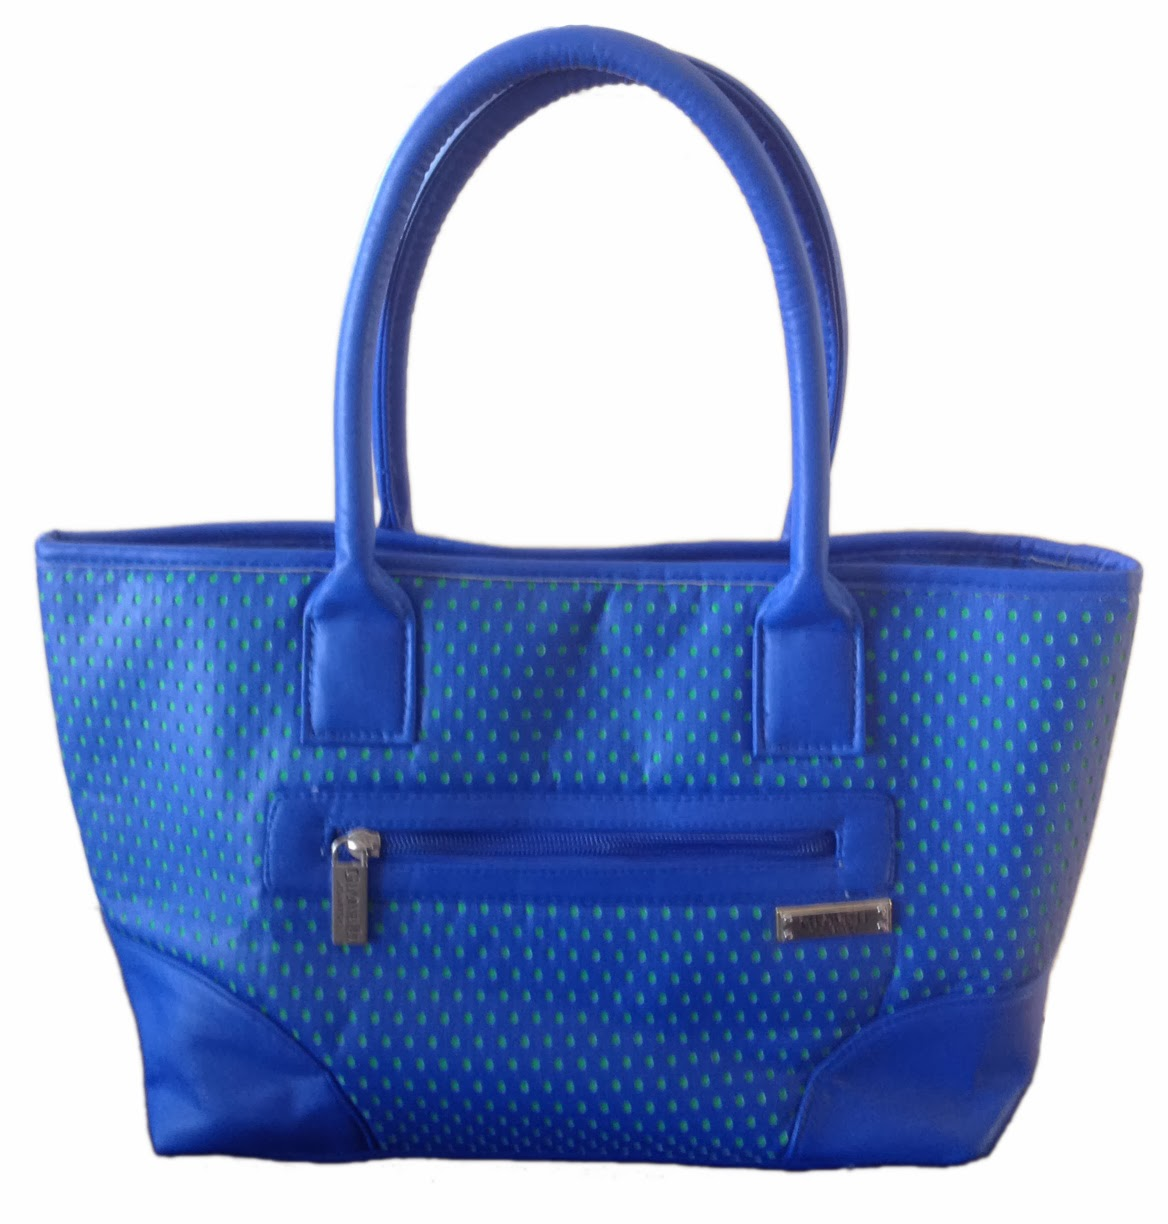 http://www.pinkgolftees.com/ladies-golf-accessories/golf-totes/glove-it-blue-green-perf-tote-bag.html